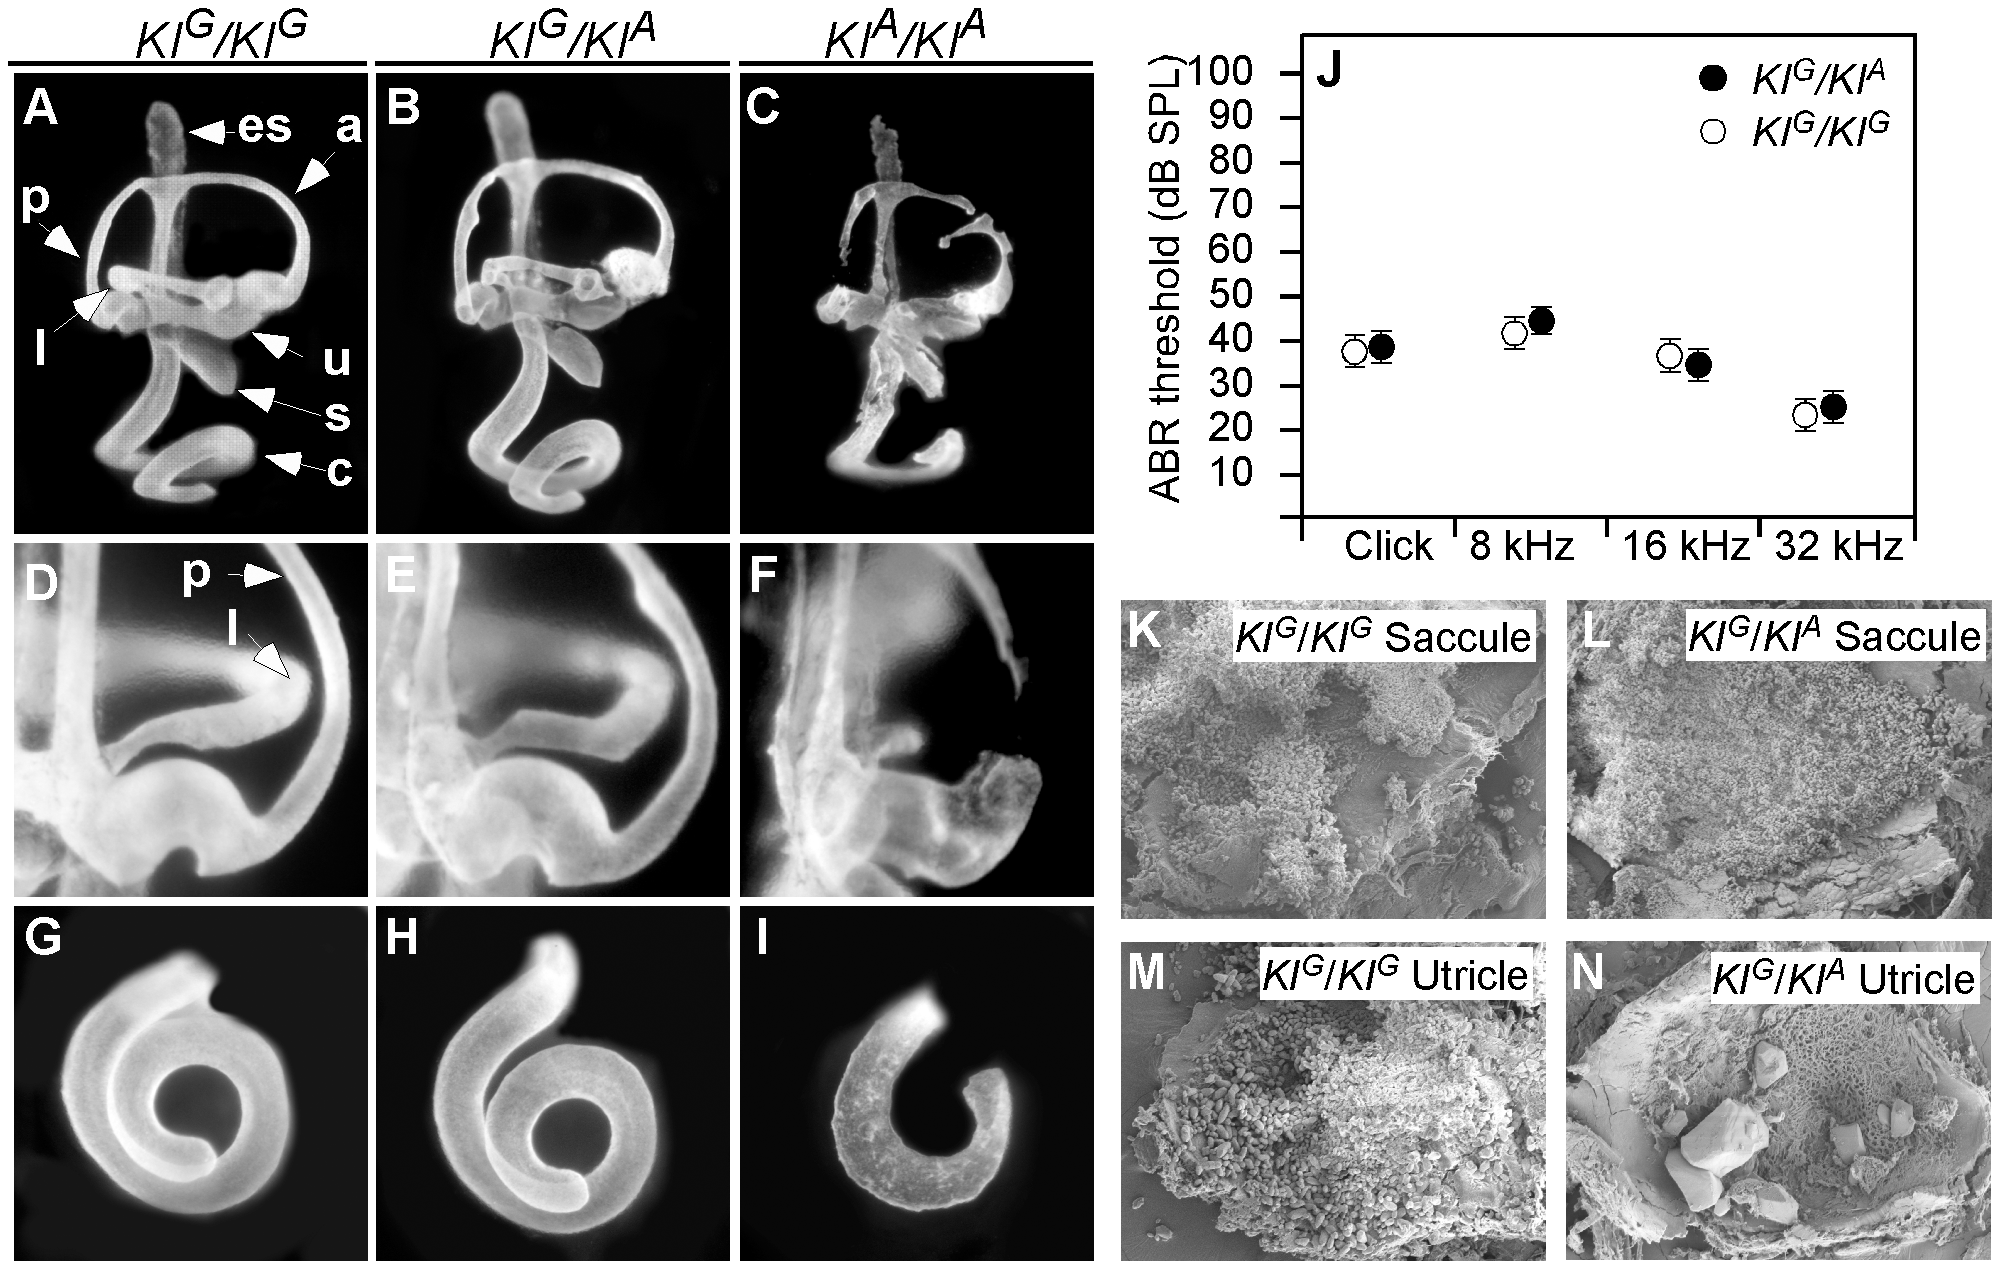 Inner ear morphology, hearing thresholds, and otoconia of wild-type (<i>KI<sup>G</sup></i>) and <i>Tw</i> (<i>KI<sup>A</sup></i>) knockin mice.